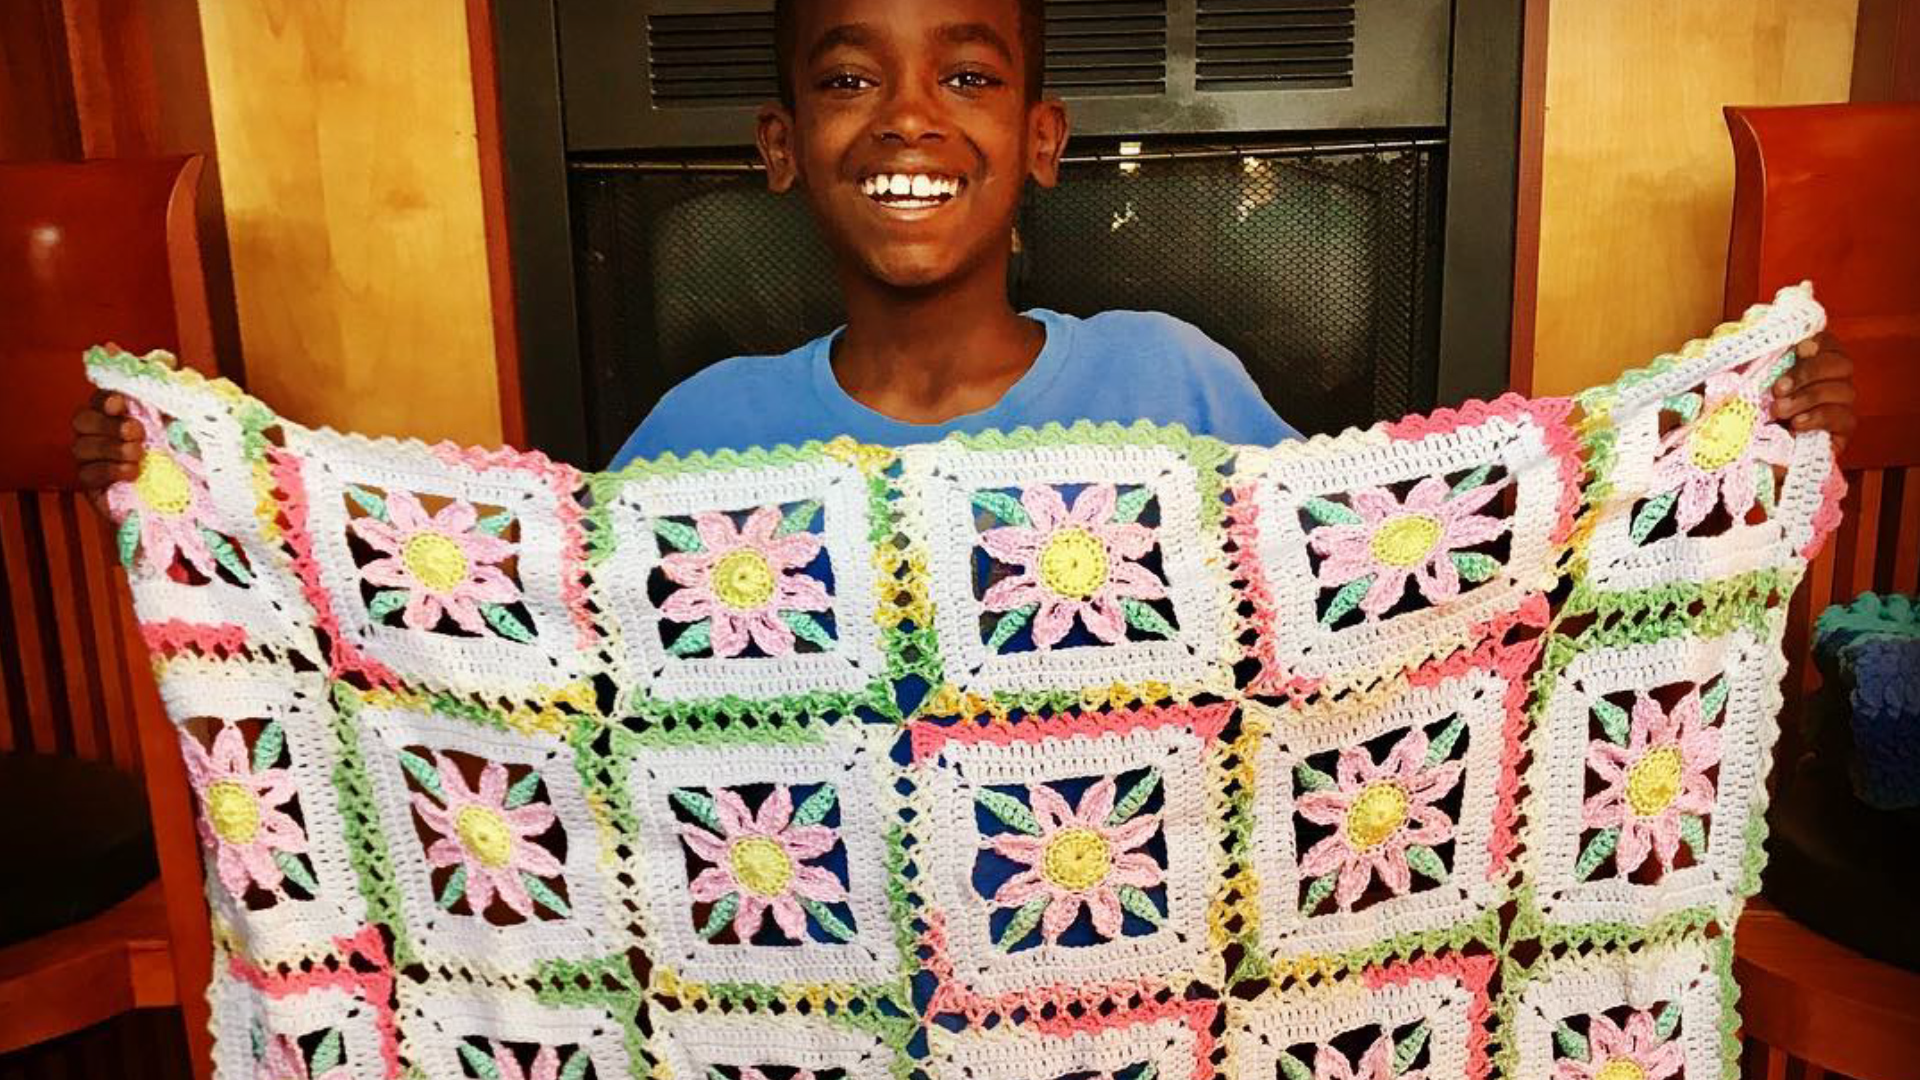 Inspiring 11-year-old crochets for a good cause